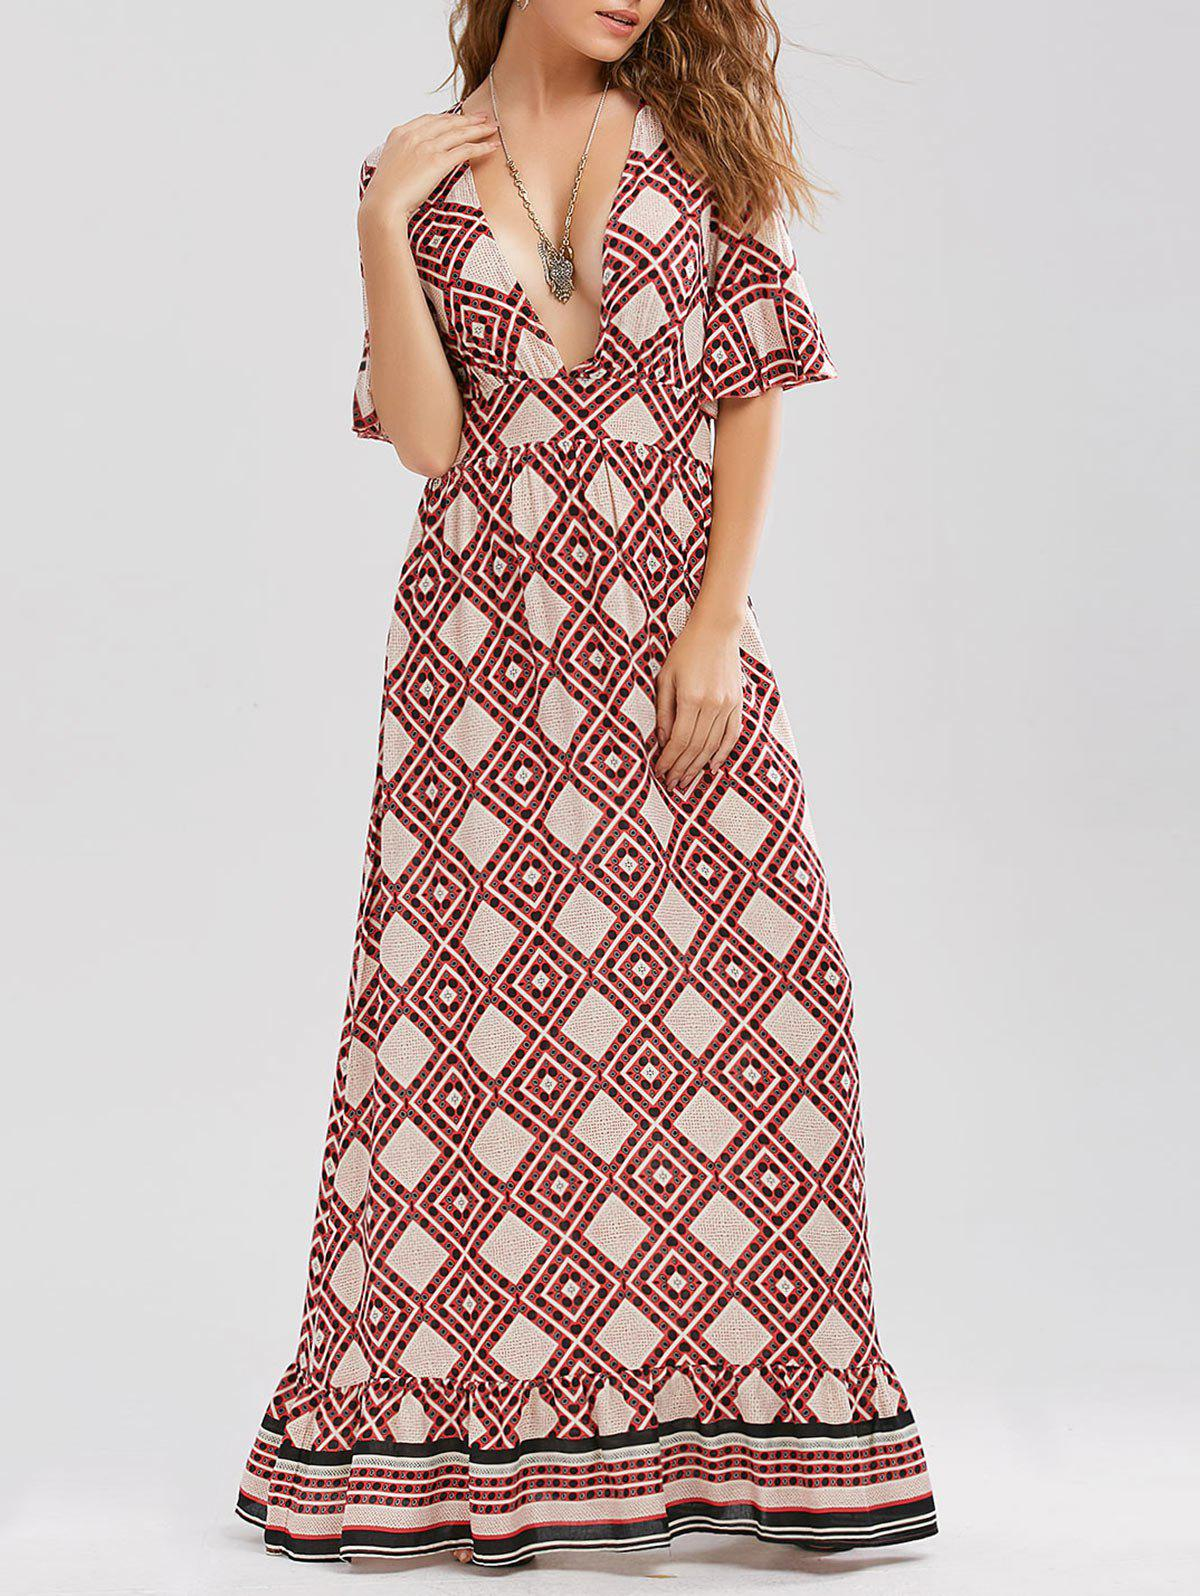 Printed Plunging Neck Floor Length Dress - RED S